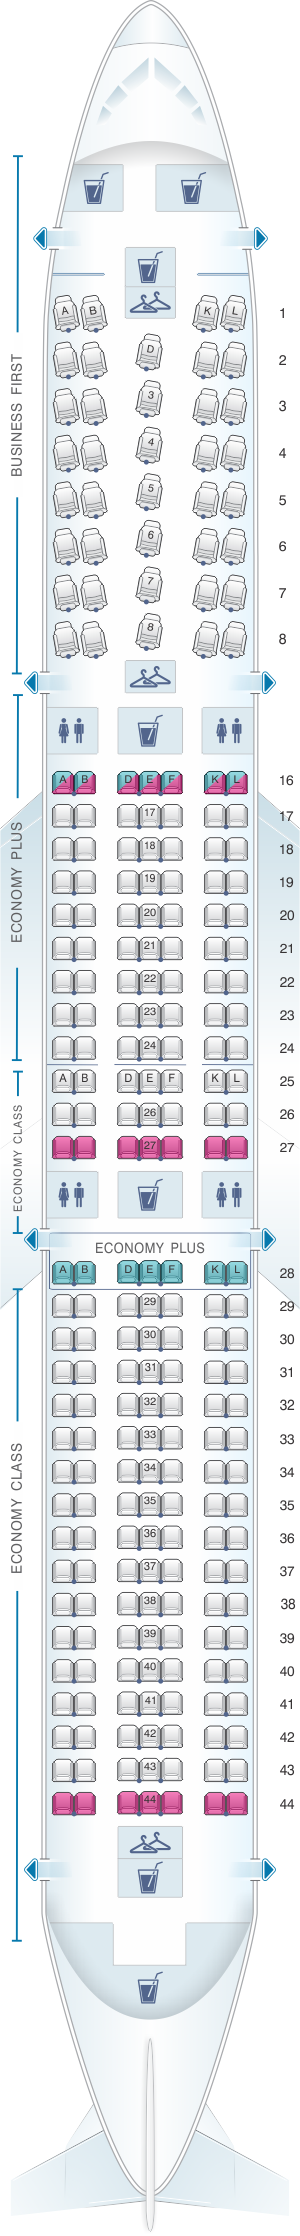 Seat map for United Airlines Boeing B767 400ER (764)